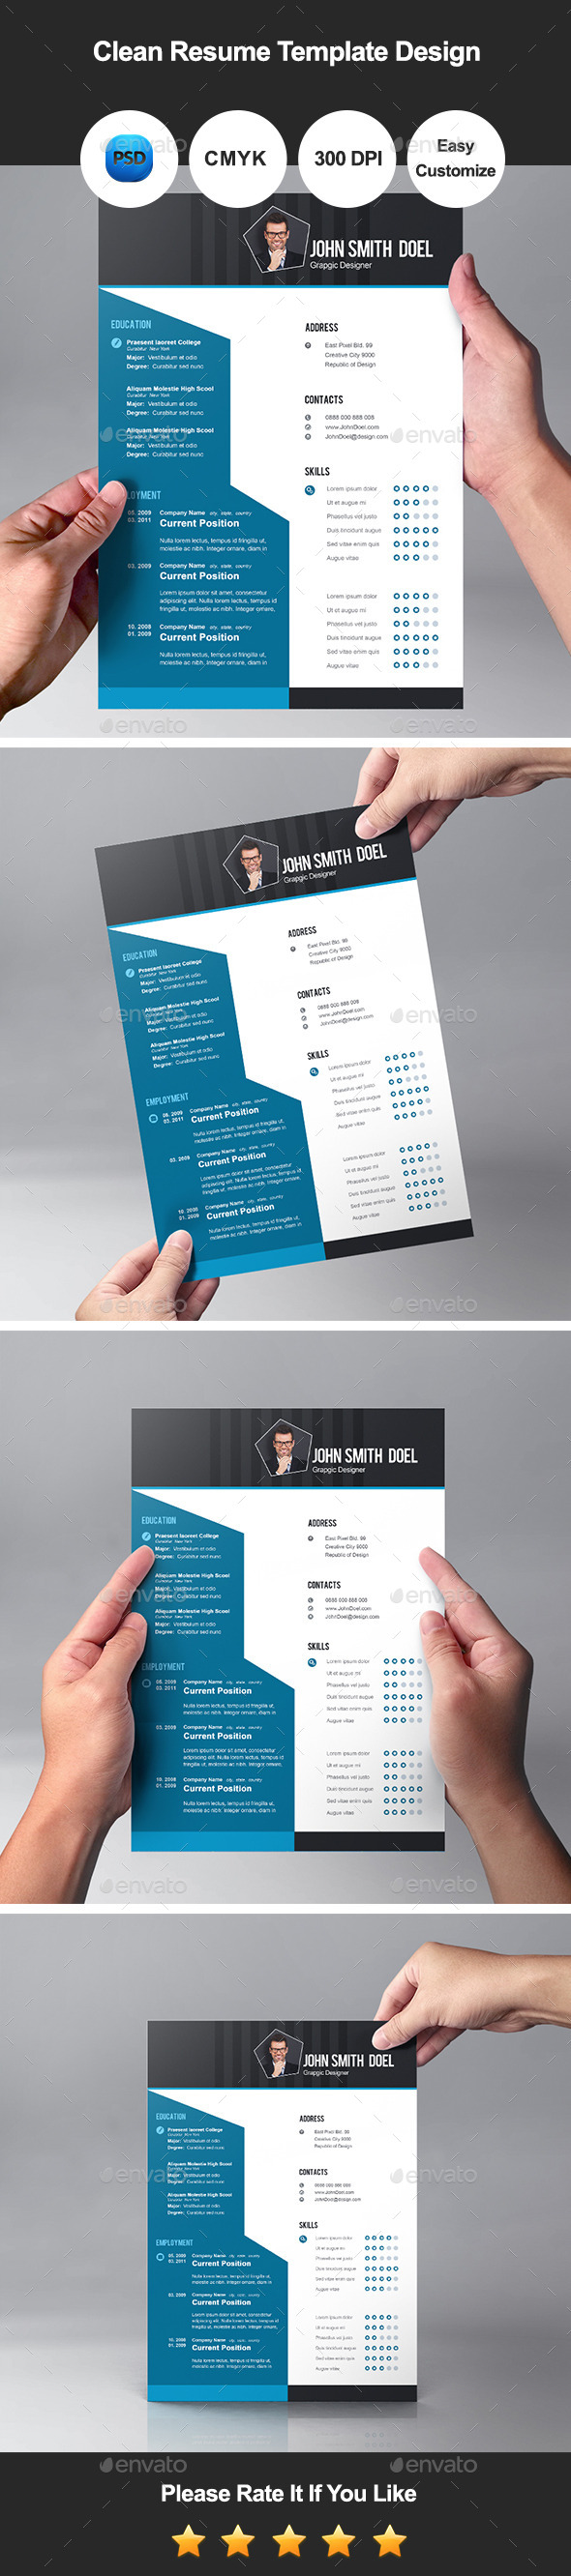 GraphicRiver Clean Resume Template Design 11596095